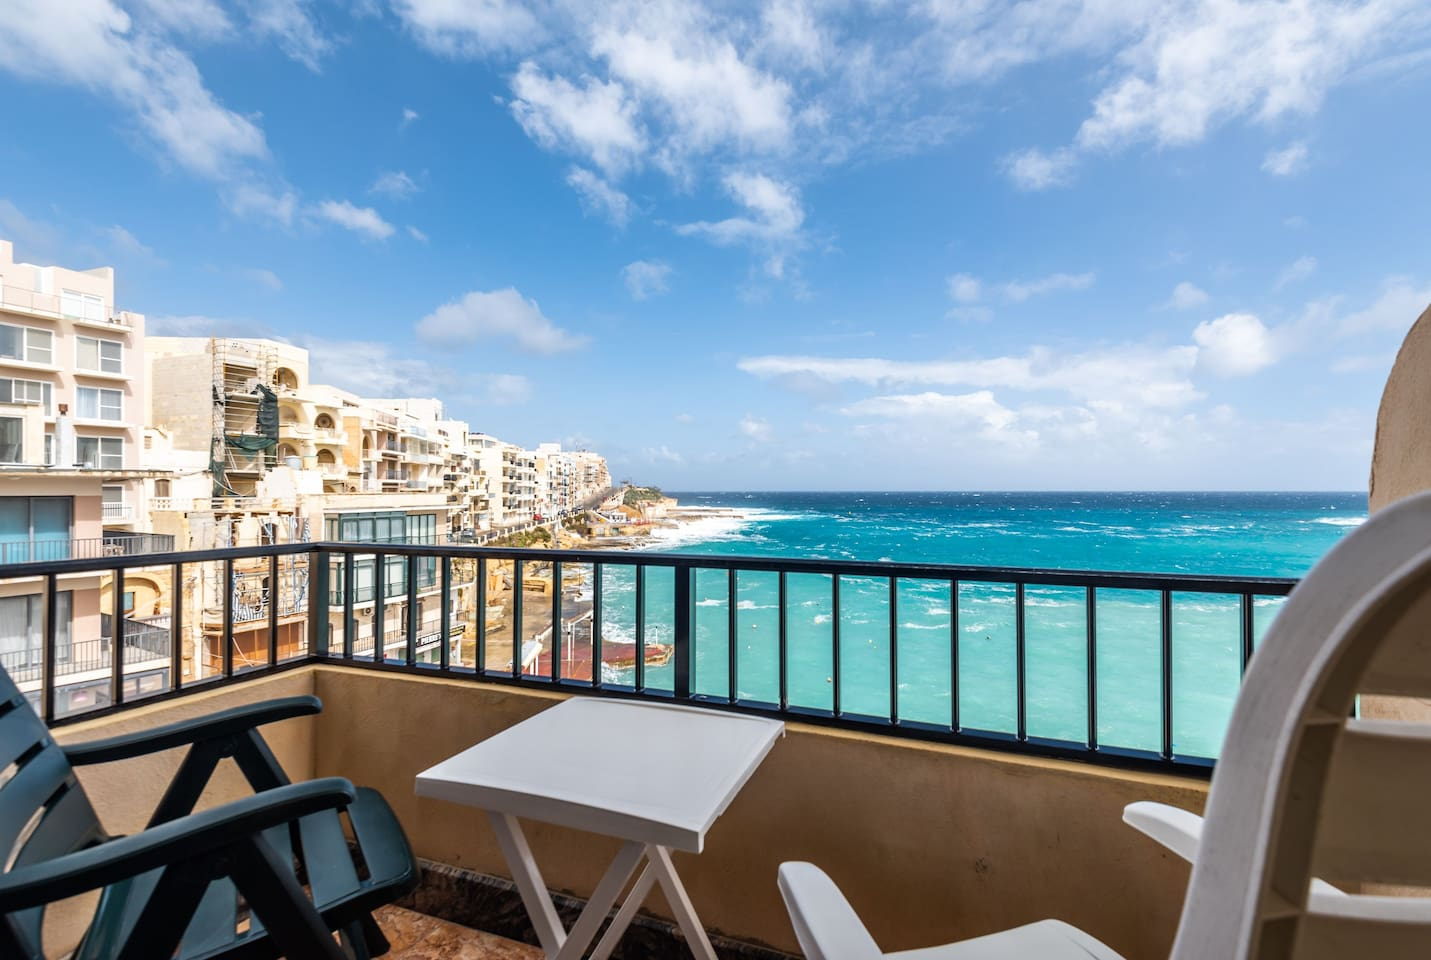 The small balcony with its fantastic sea view, offers enough space for 2 persons